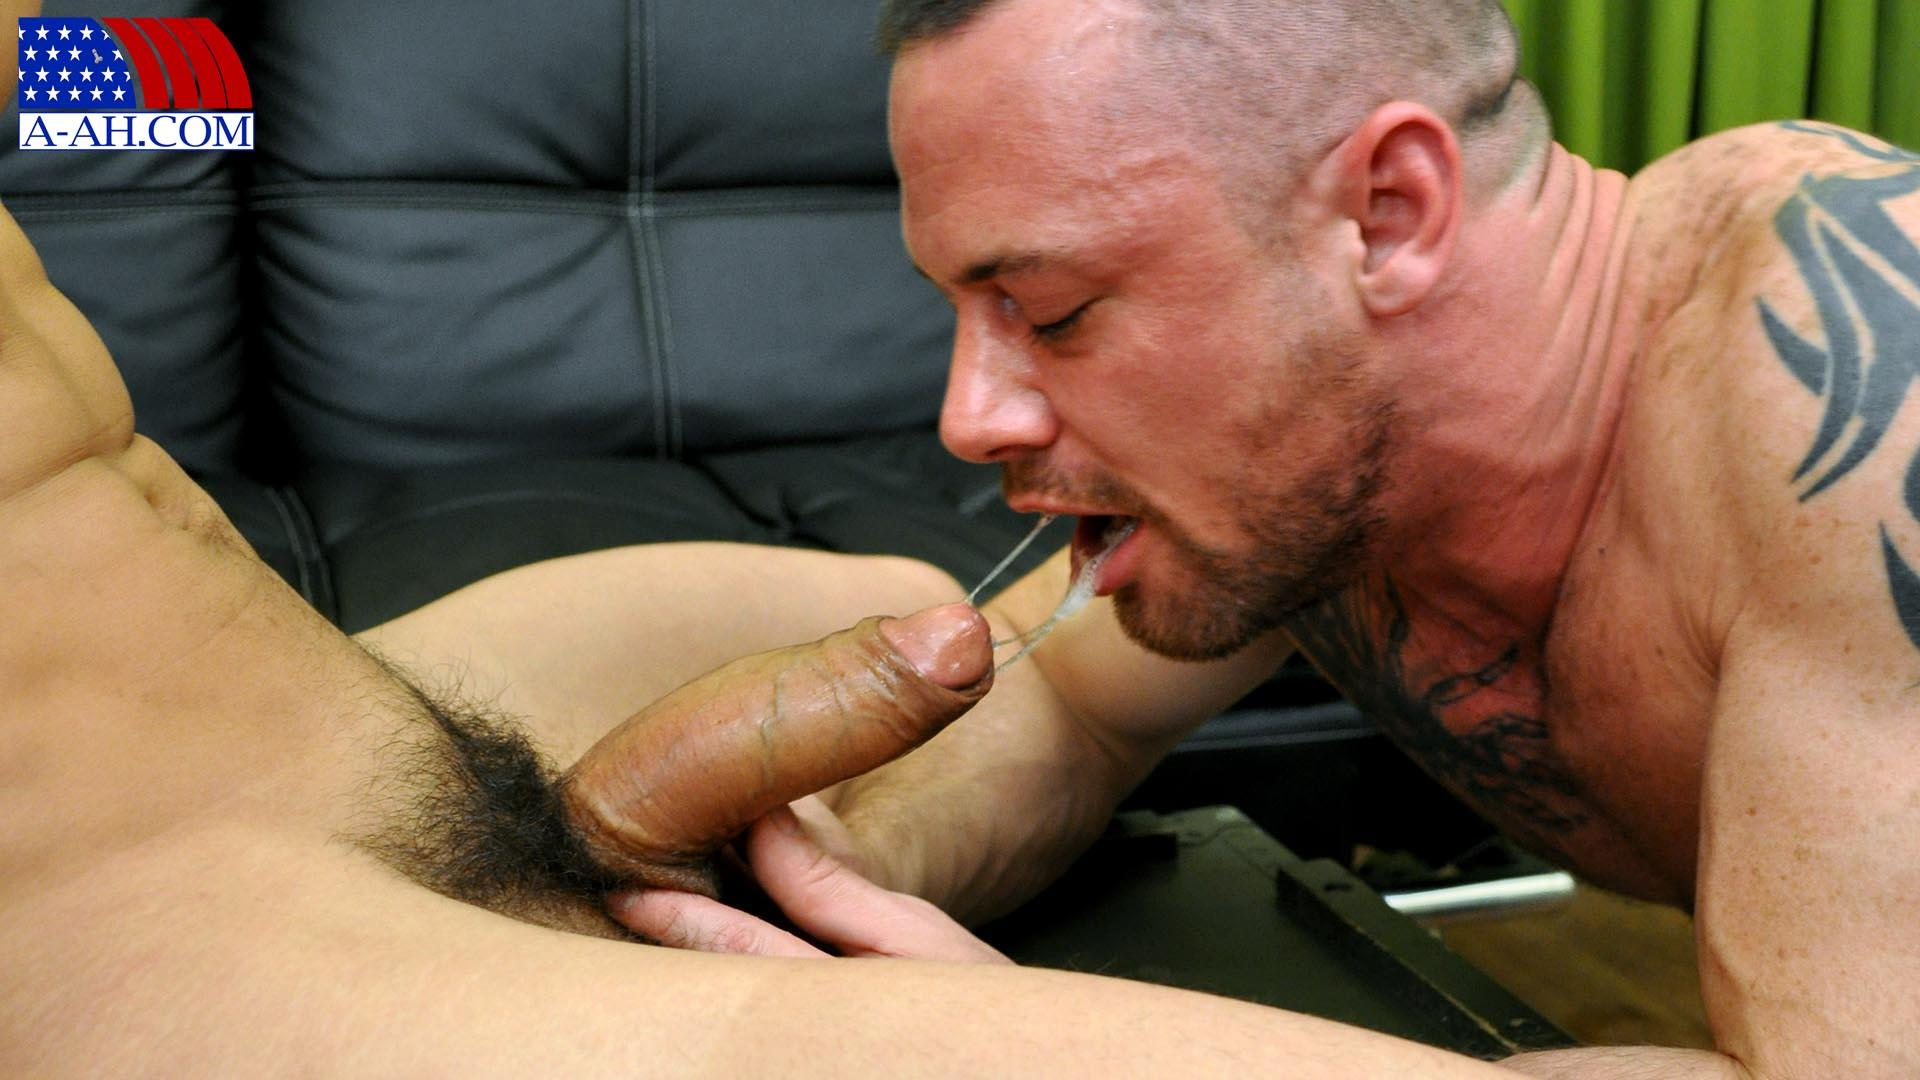 All-American-Heroes-Navy-Petty-Officer-Eddy-fucking-Army-Sergeant-Miles-Big-Uncut-Cock-Amateur-Gay-Porn-05 Navy Petty Officer Fucks A Muscle Army Sergeant